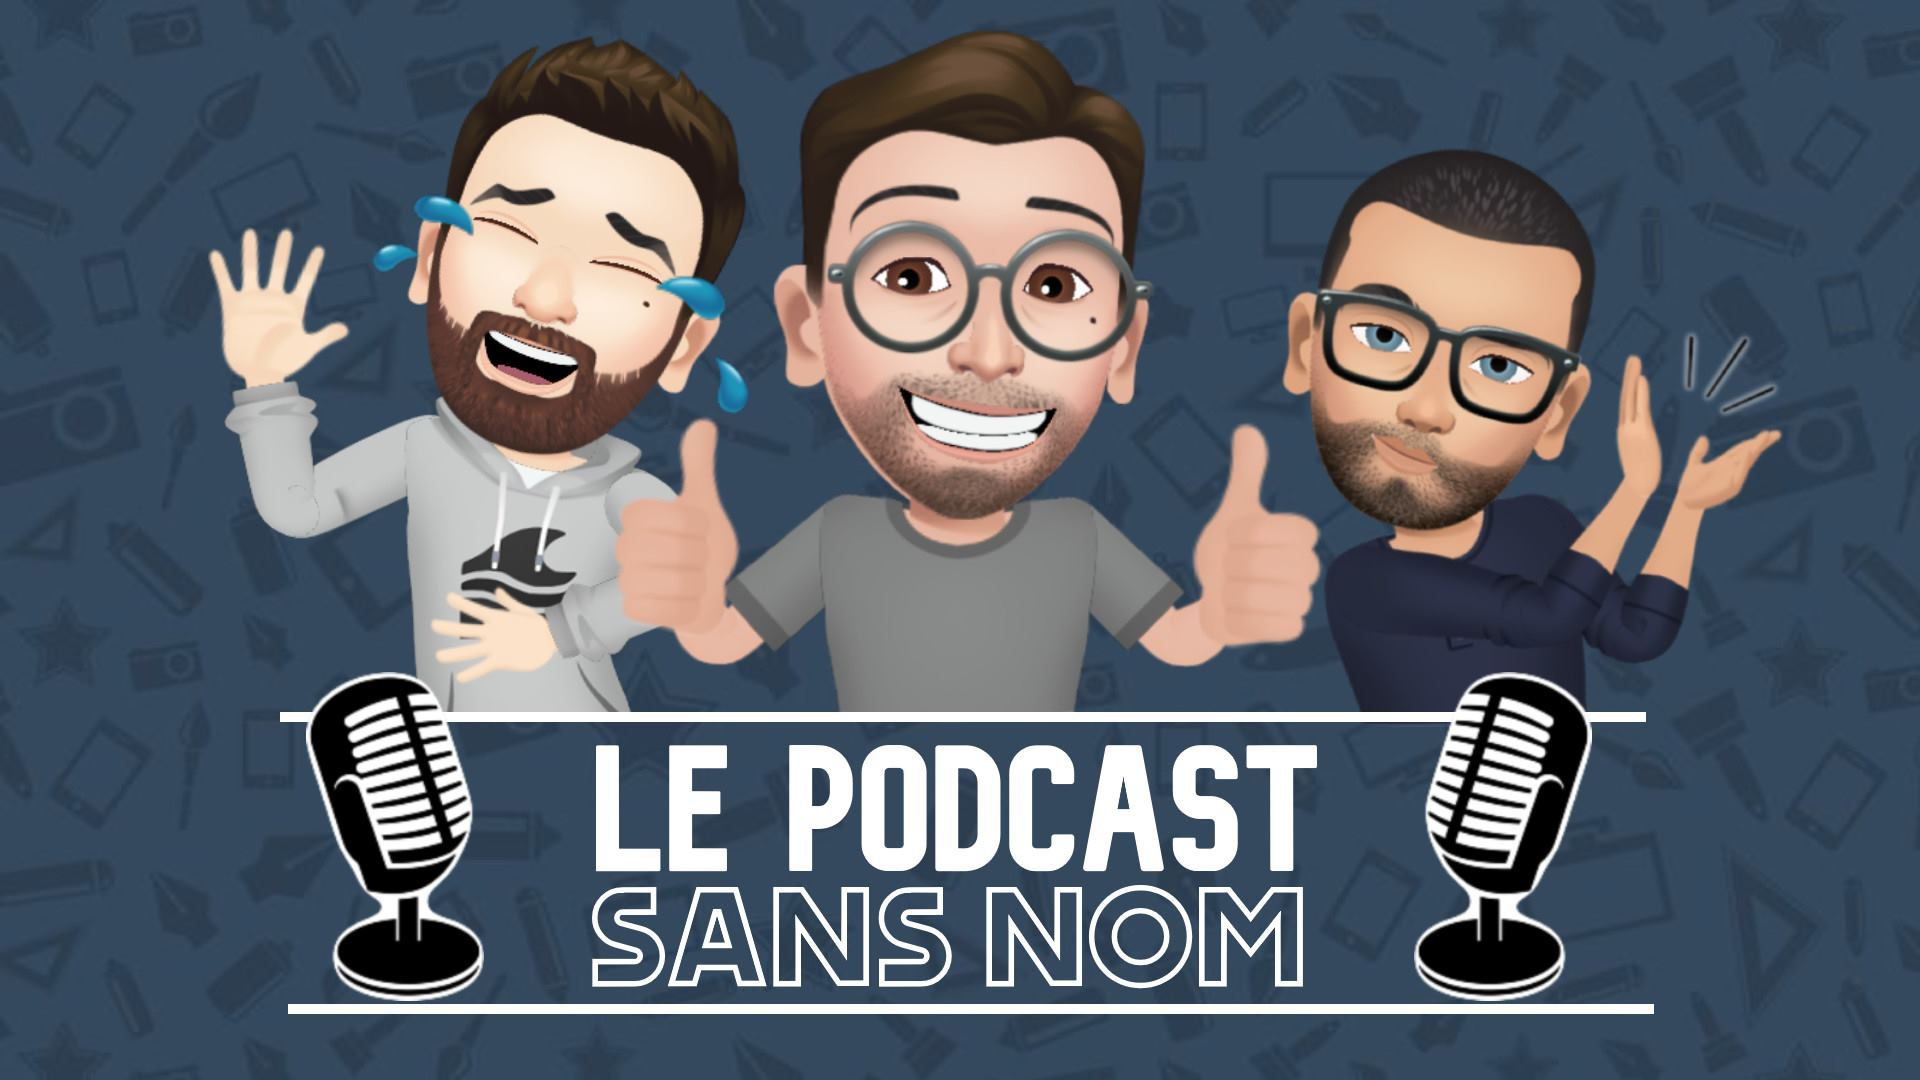 Nouvel épisode du Podcast : épisode 1 officiel